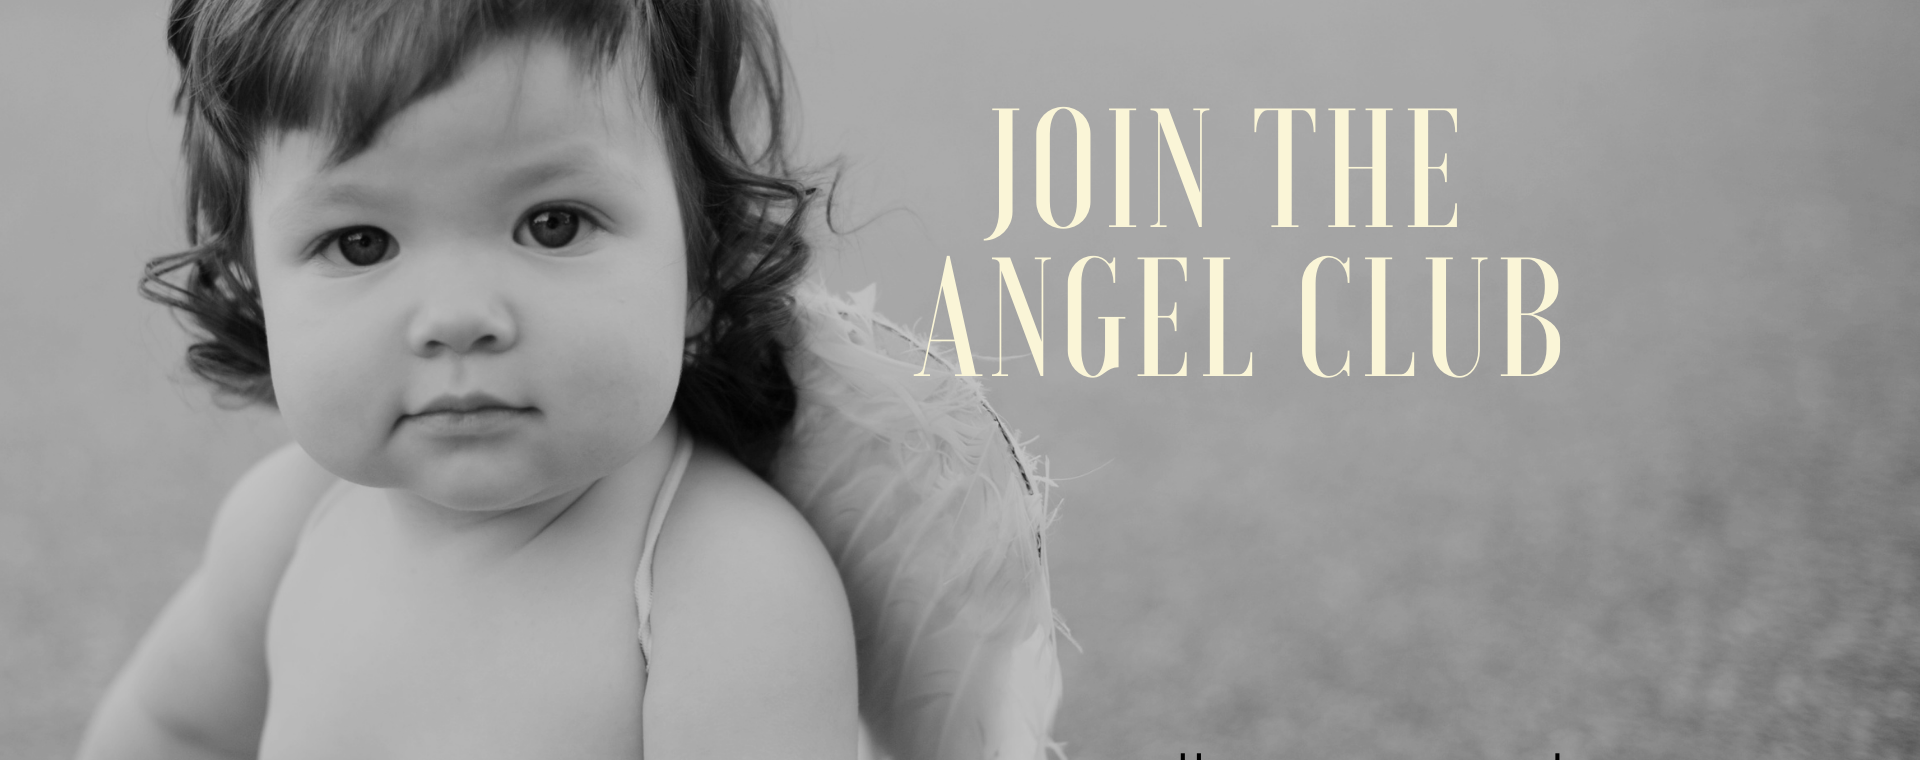 Be an angel, join the club